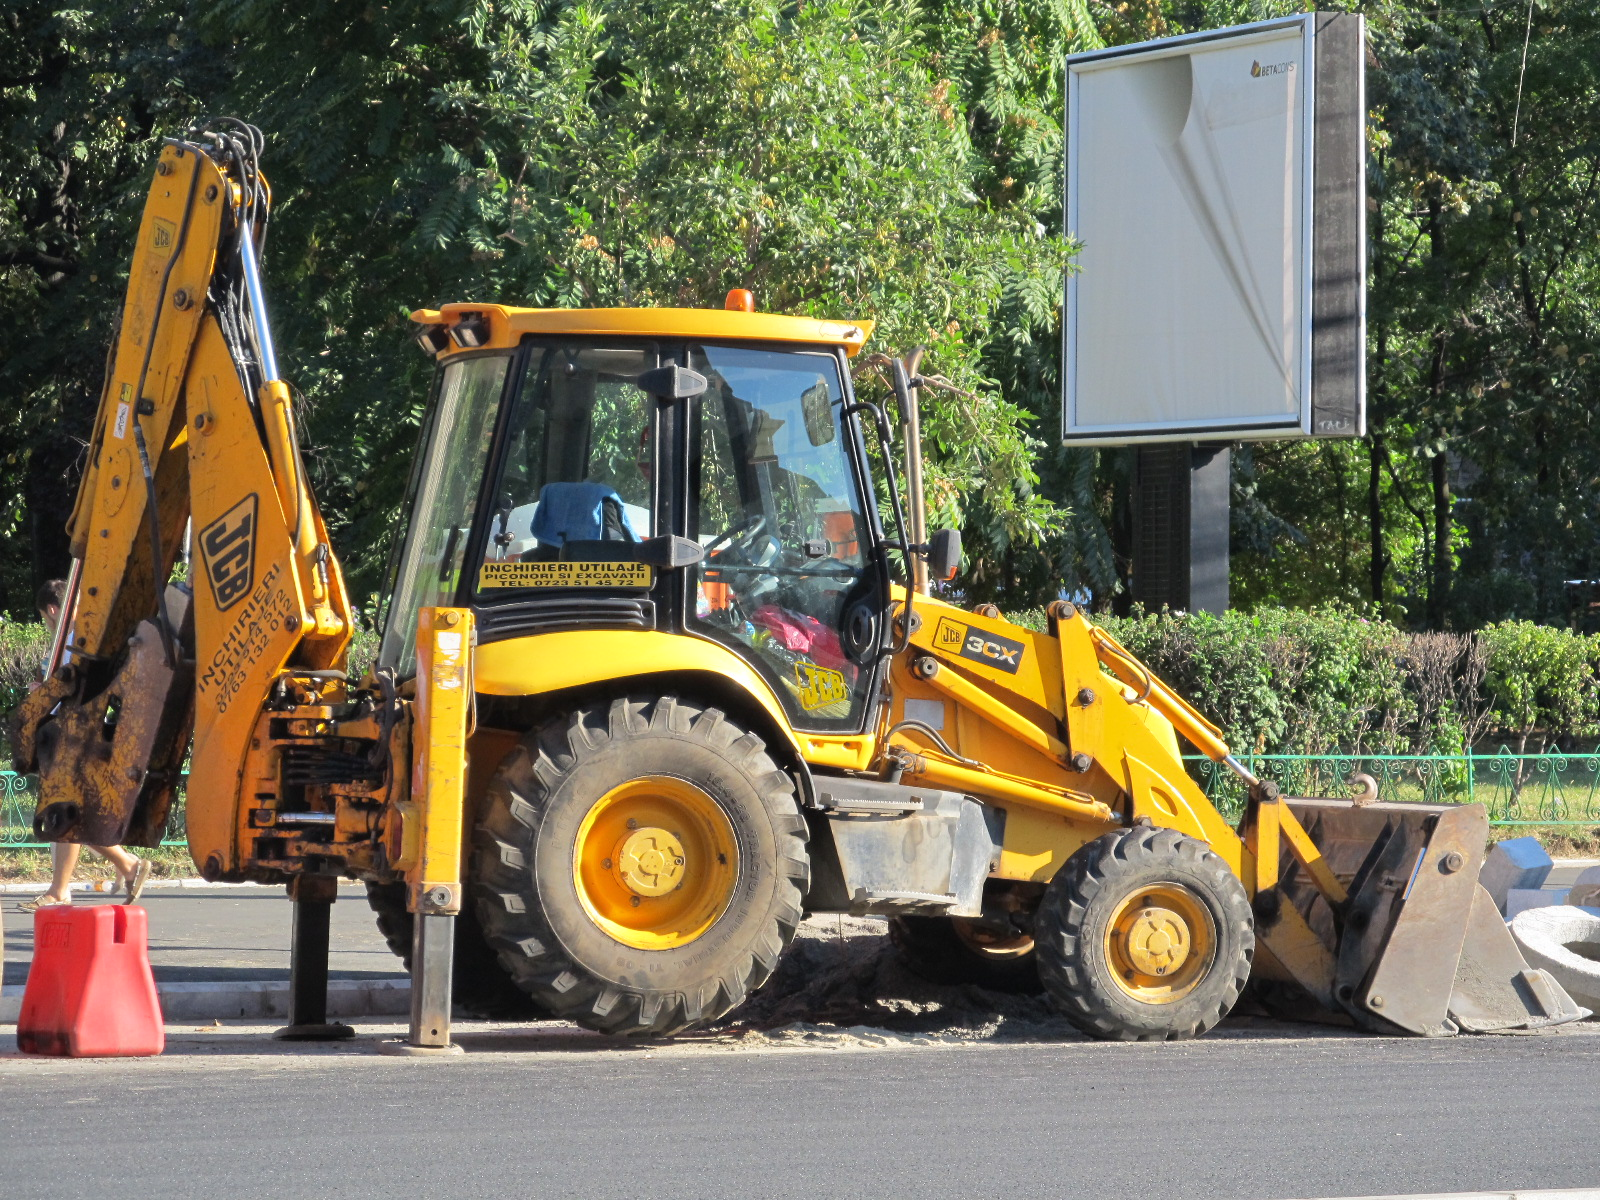 jcb 3dx With a legacy of over 70 decades, jcb is one of the largest backhoe manufacturers in the world offering the wide range of amazing backhoes such as 2dx, 3dx, 3dx xtra, 3dx super and 4dx, jcb is now in nepal to uplift businesses to new heights.